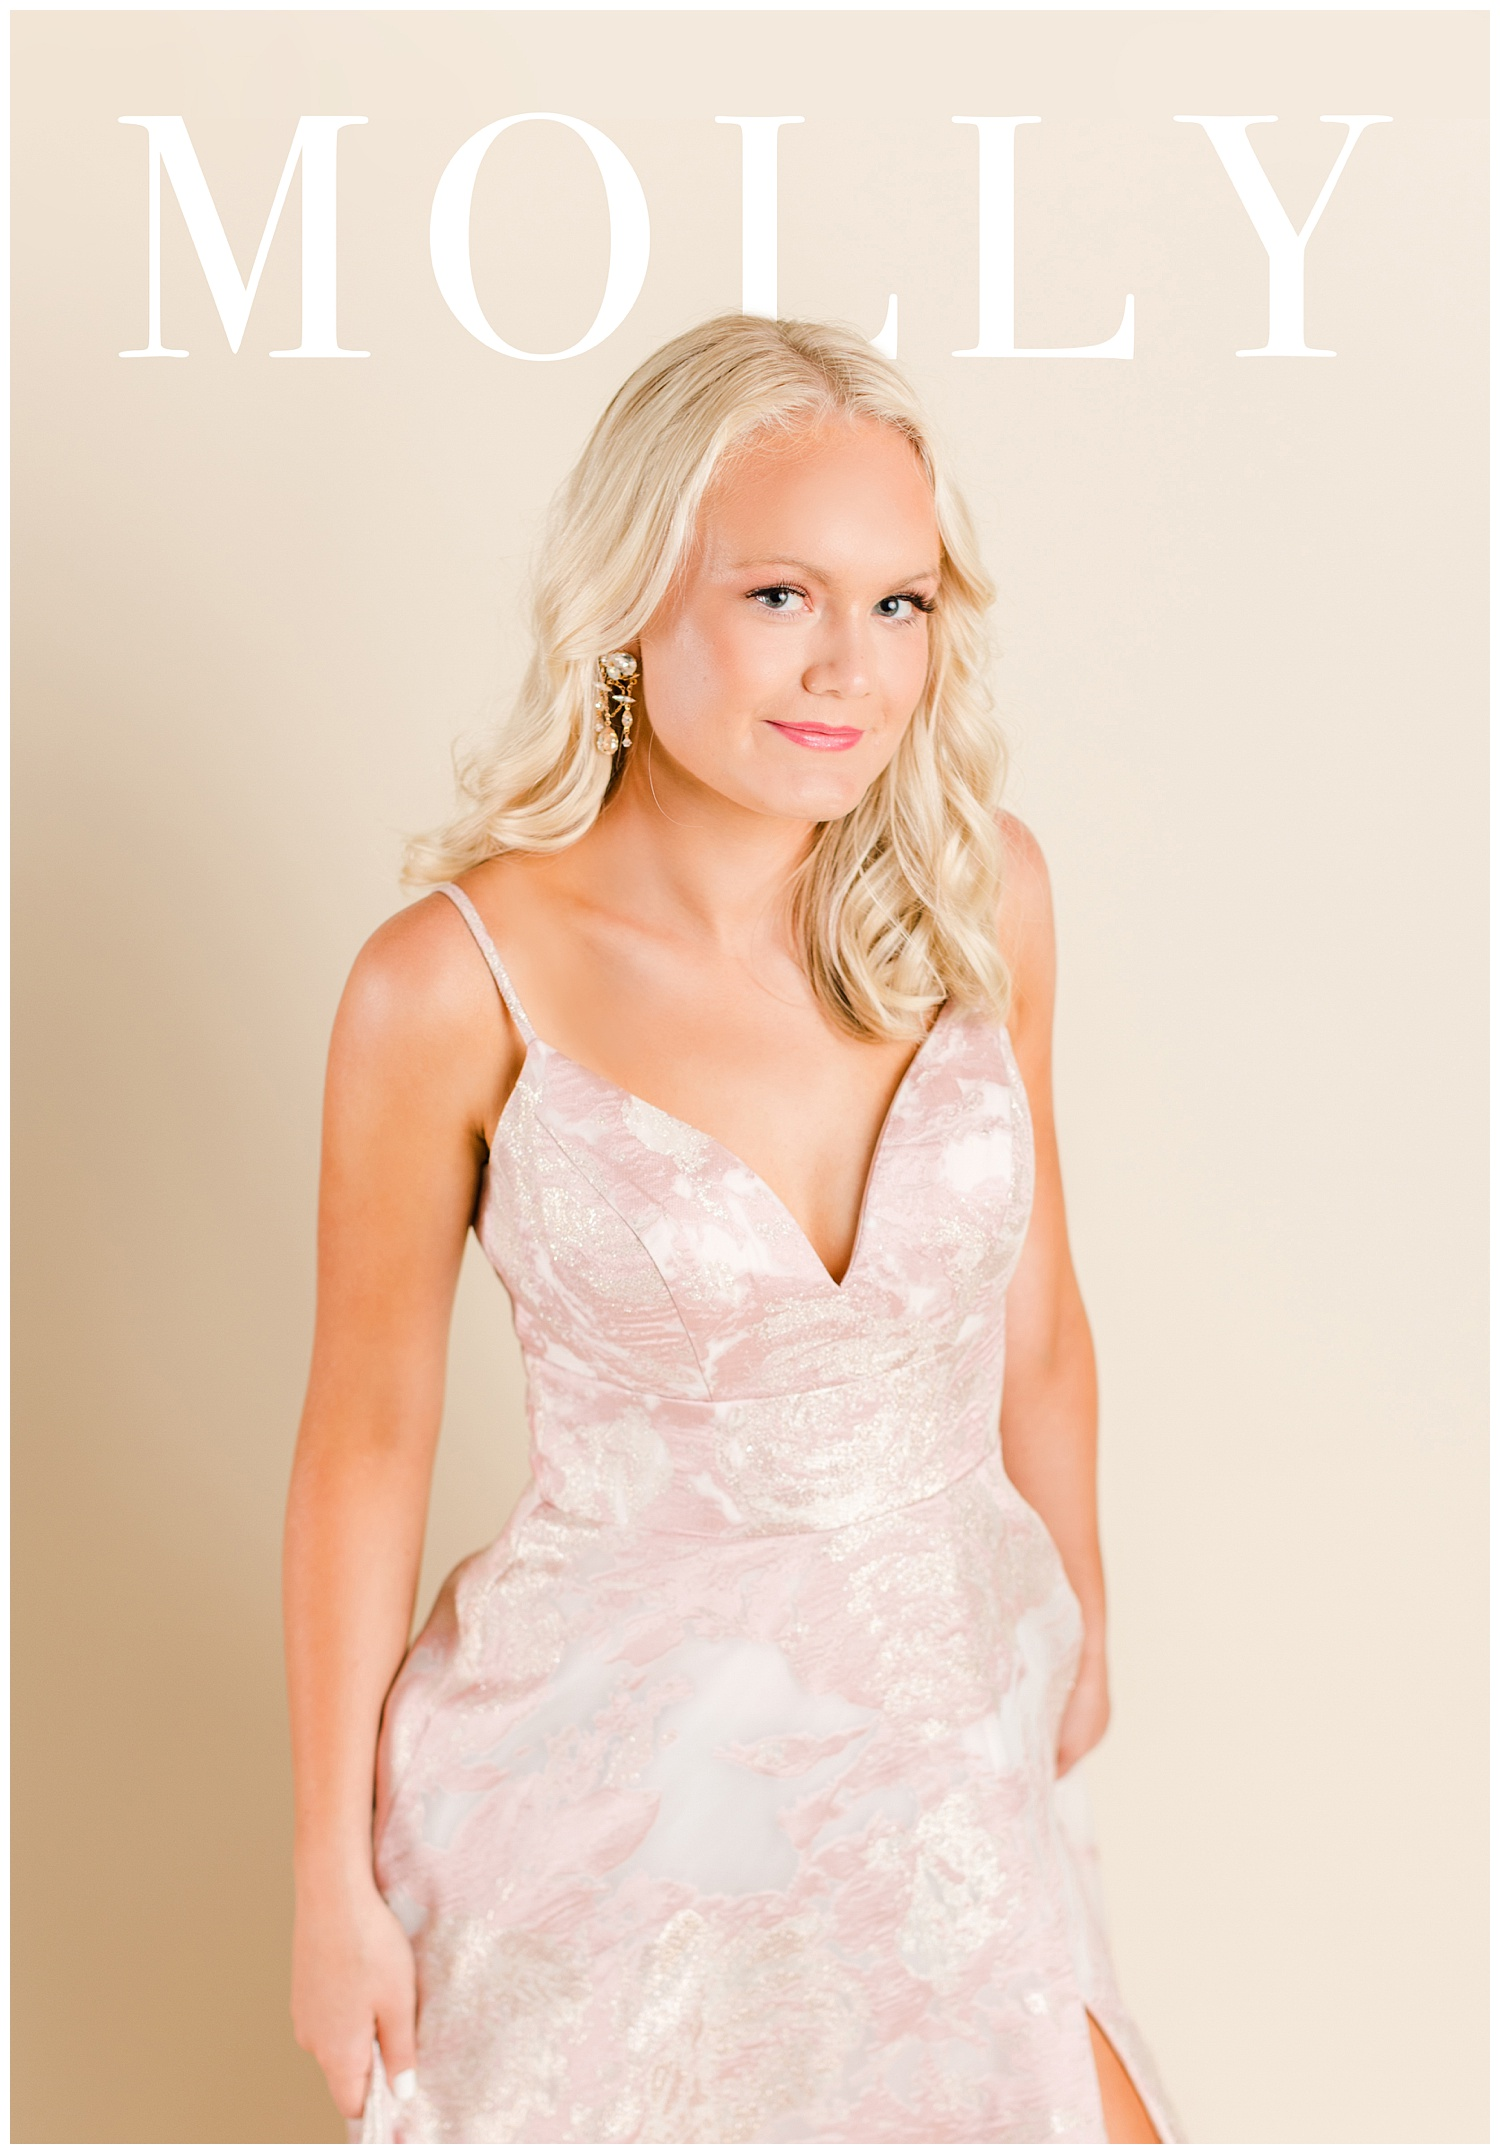 Molly poses in a Colette prom dress for a magazine cover | CB Studio